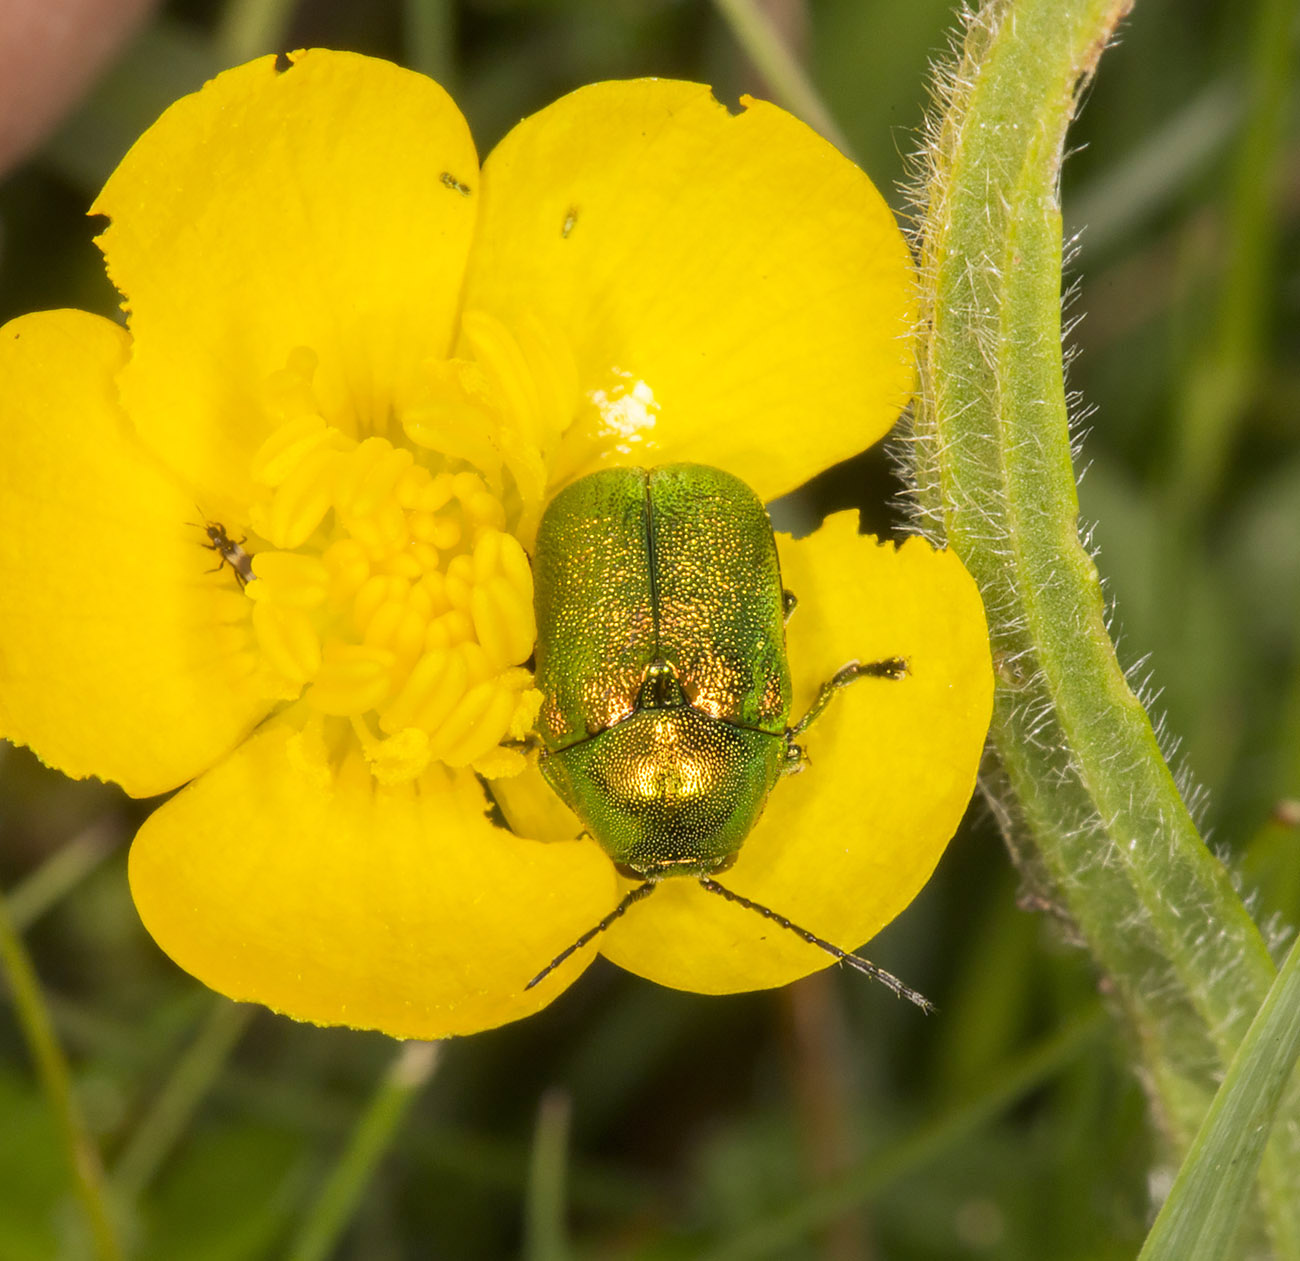 Leaf Beetle, Cryptocephalus aureolus.  Queendown Warren with the Orpington Field Club, 24 May 2014.